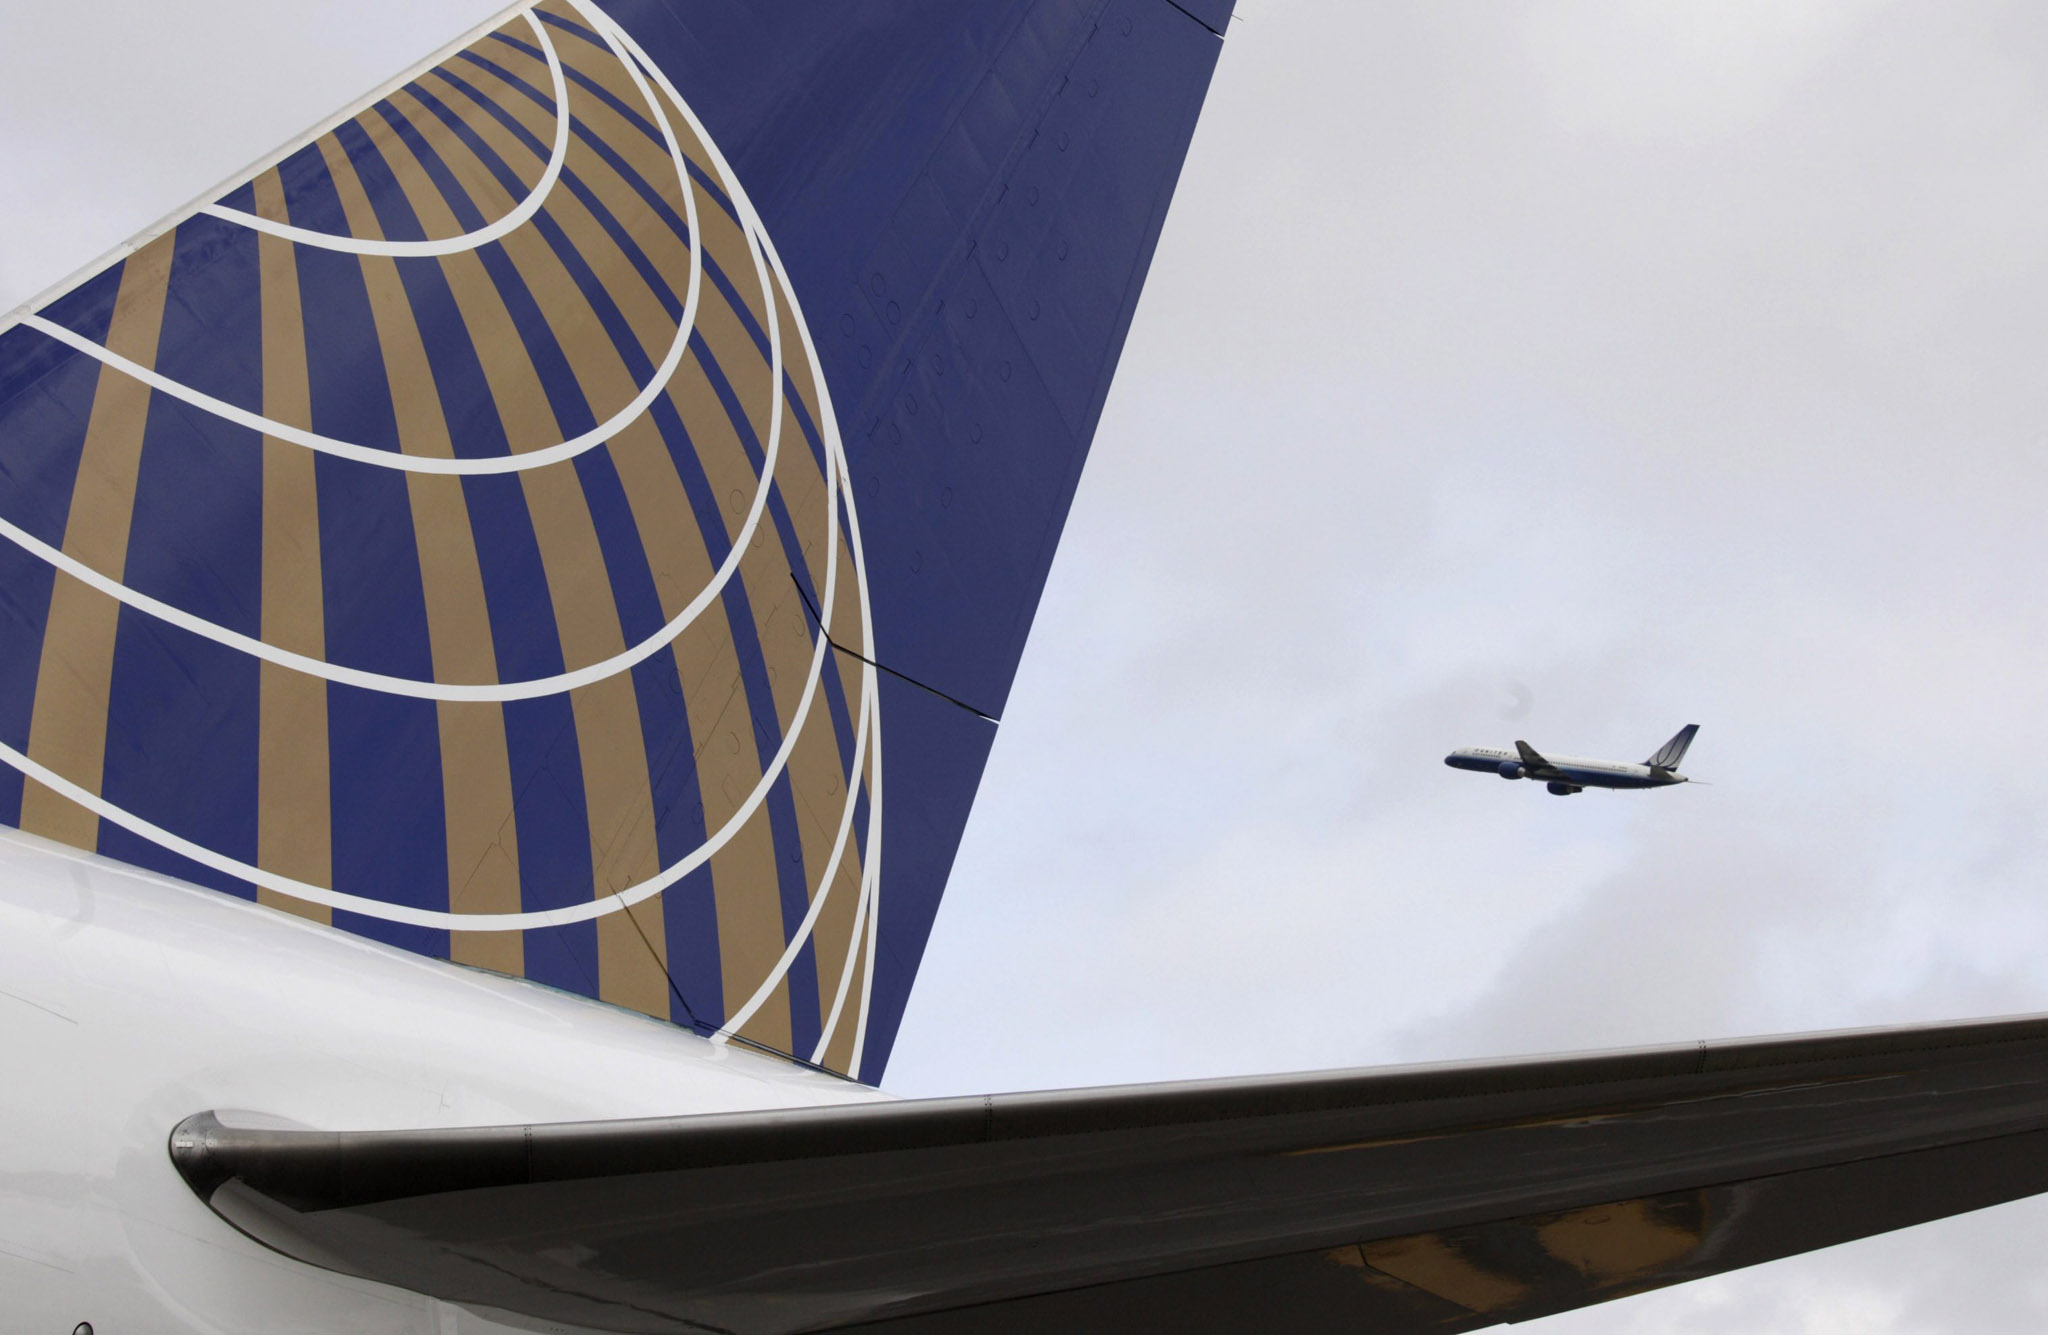 United Airlines flights, operating as United Express under a mainline partnership between United Airlines and ExpressJet, have been cancelled at the airport.